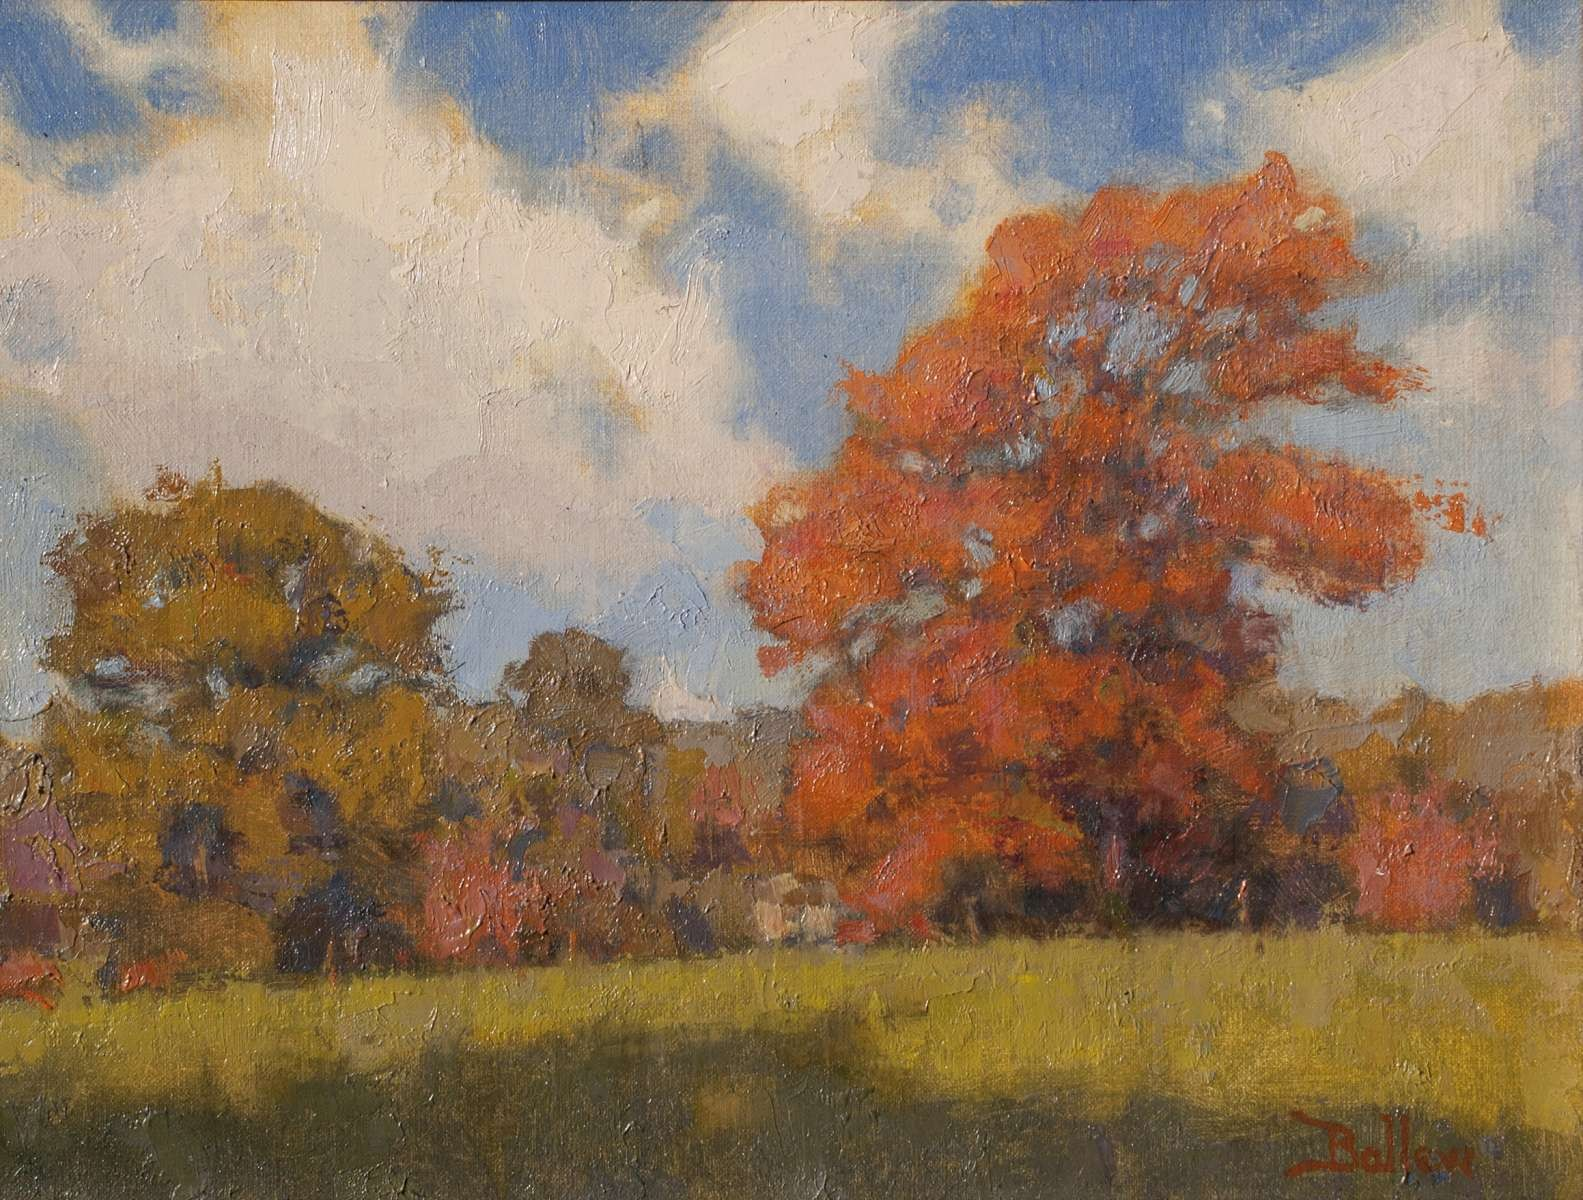 October Maple by David Ballew